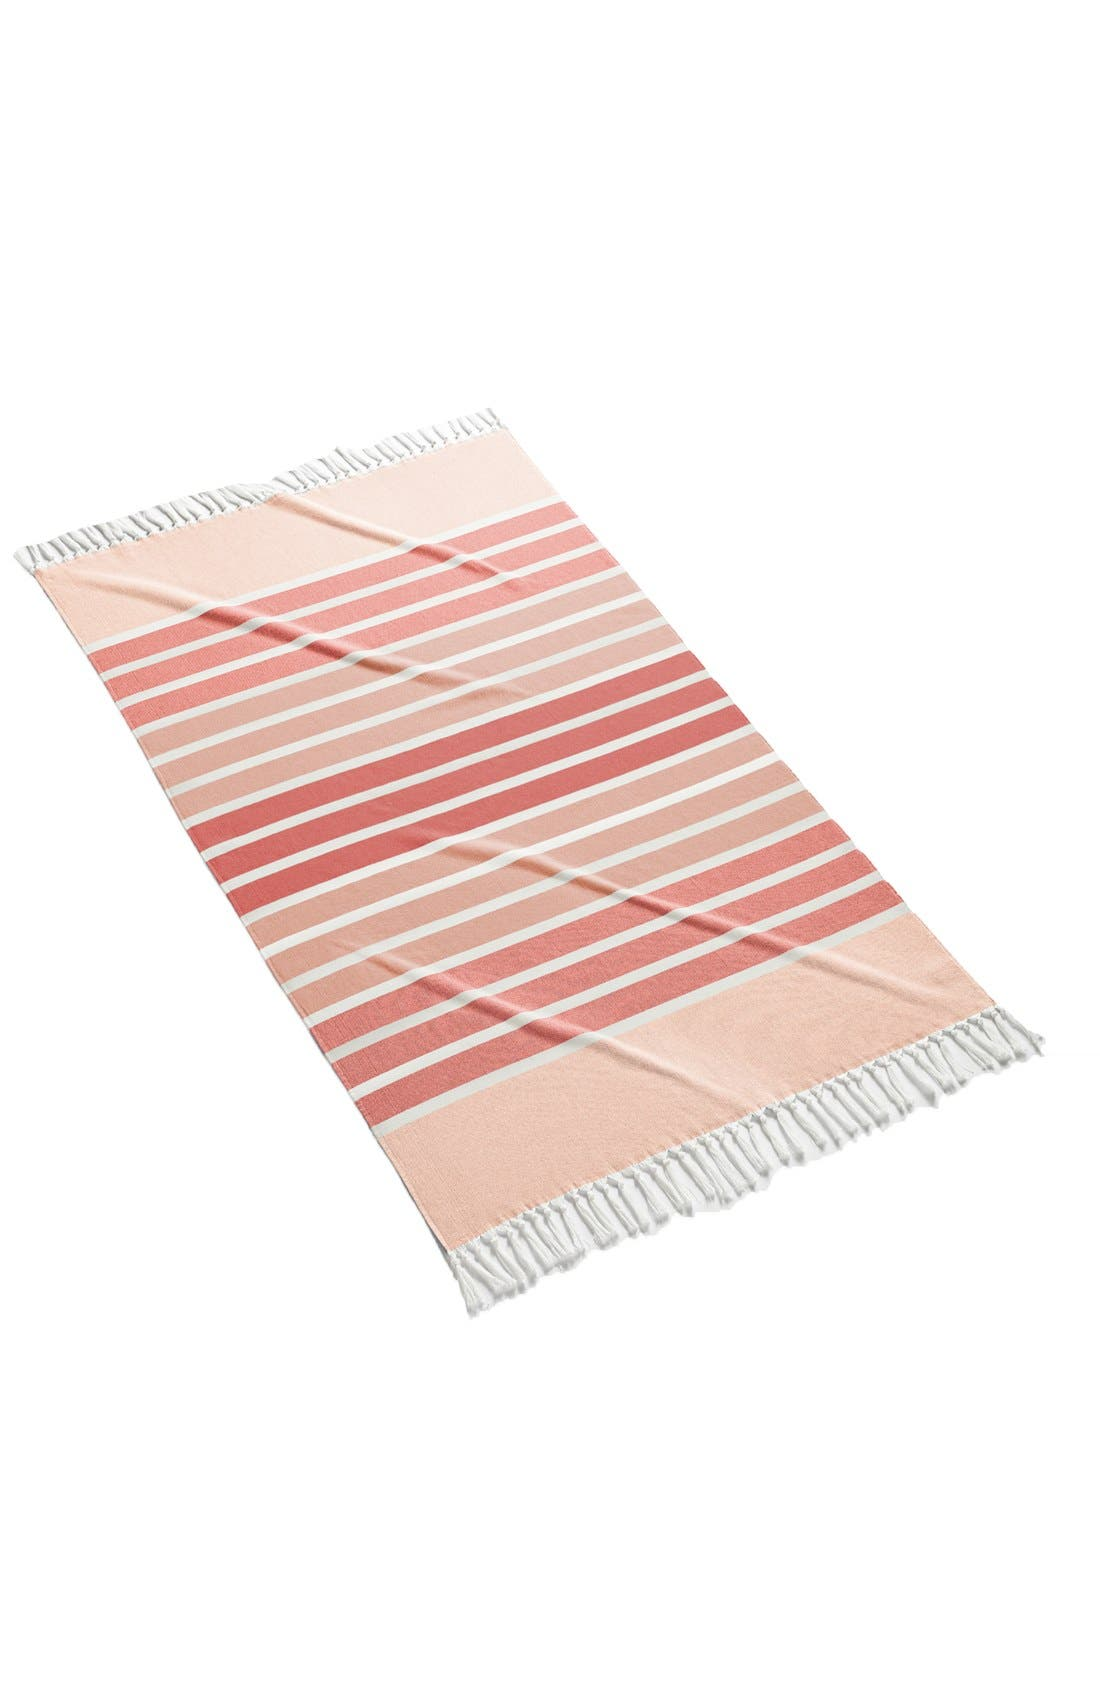 'Bodrum' Cotton Beach Towel,                         Main,                         color, CORAL